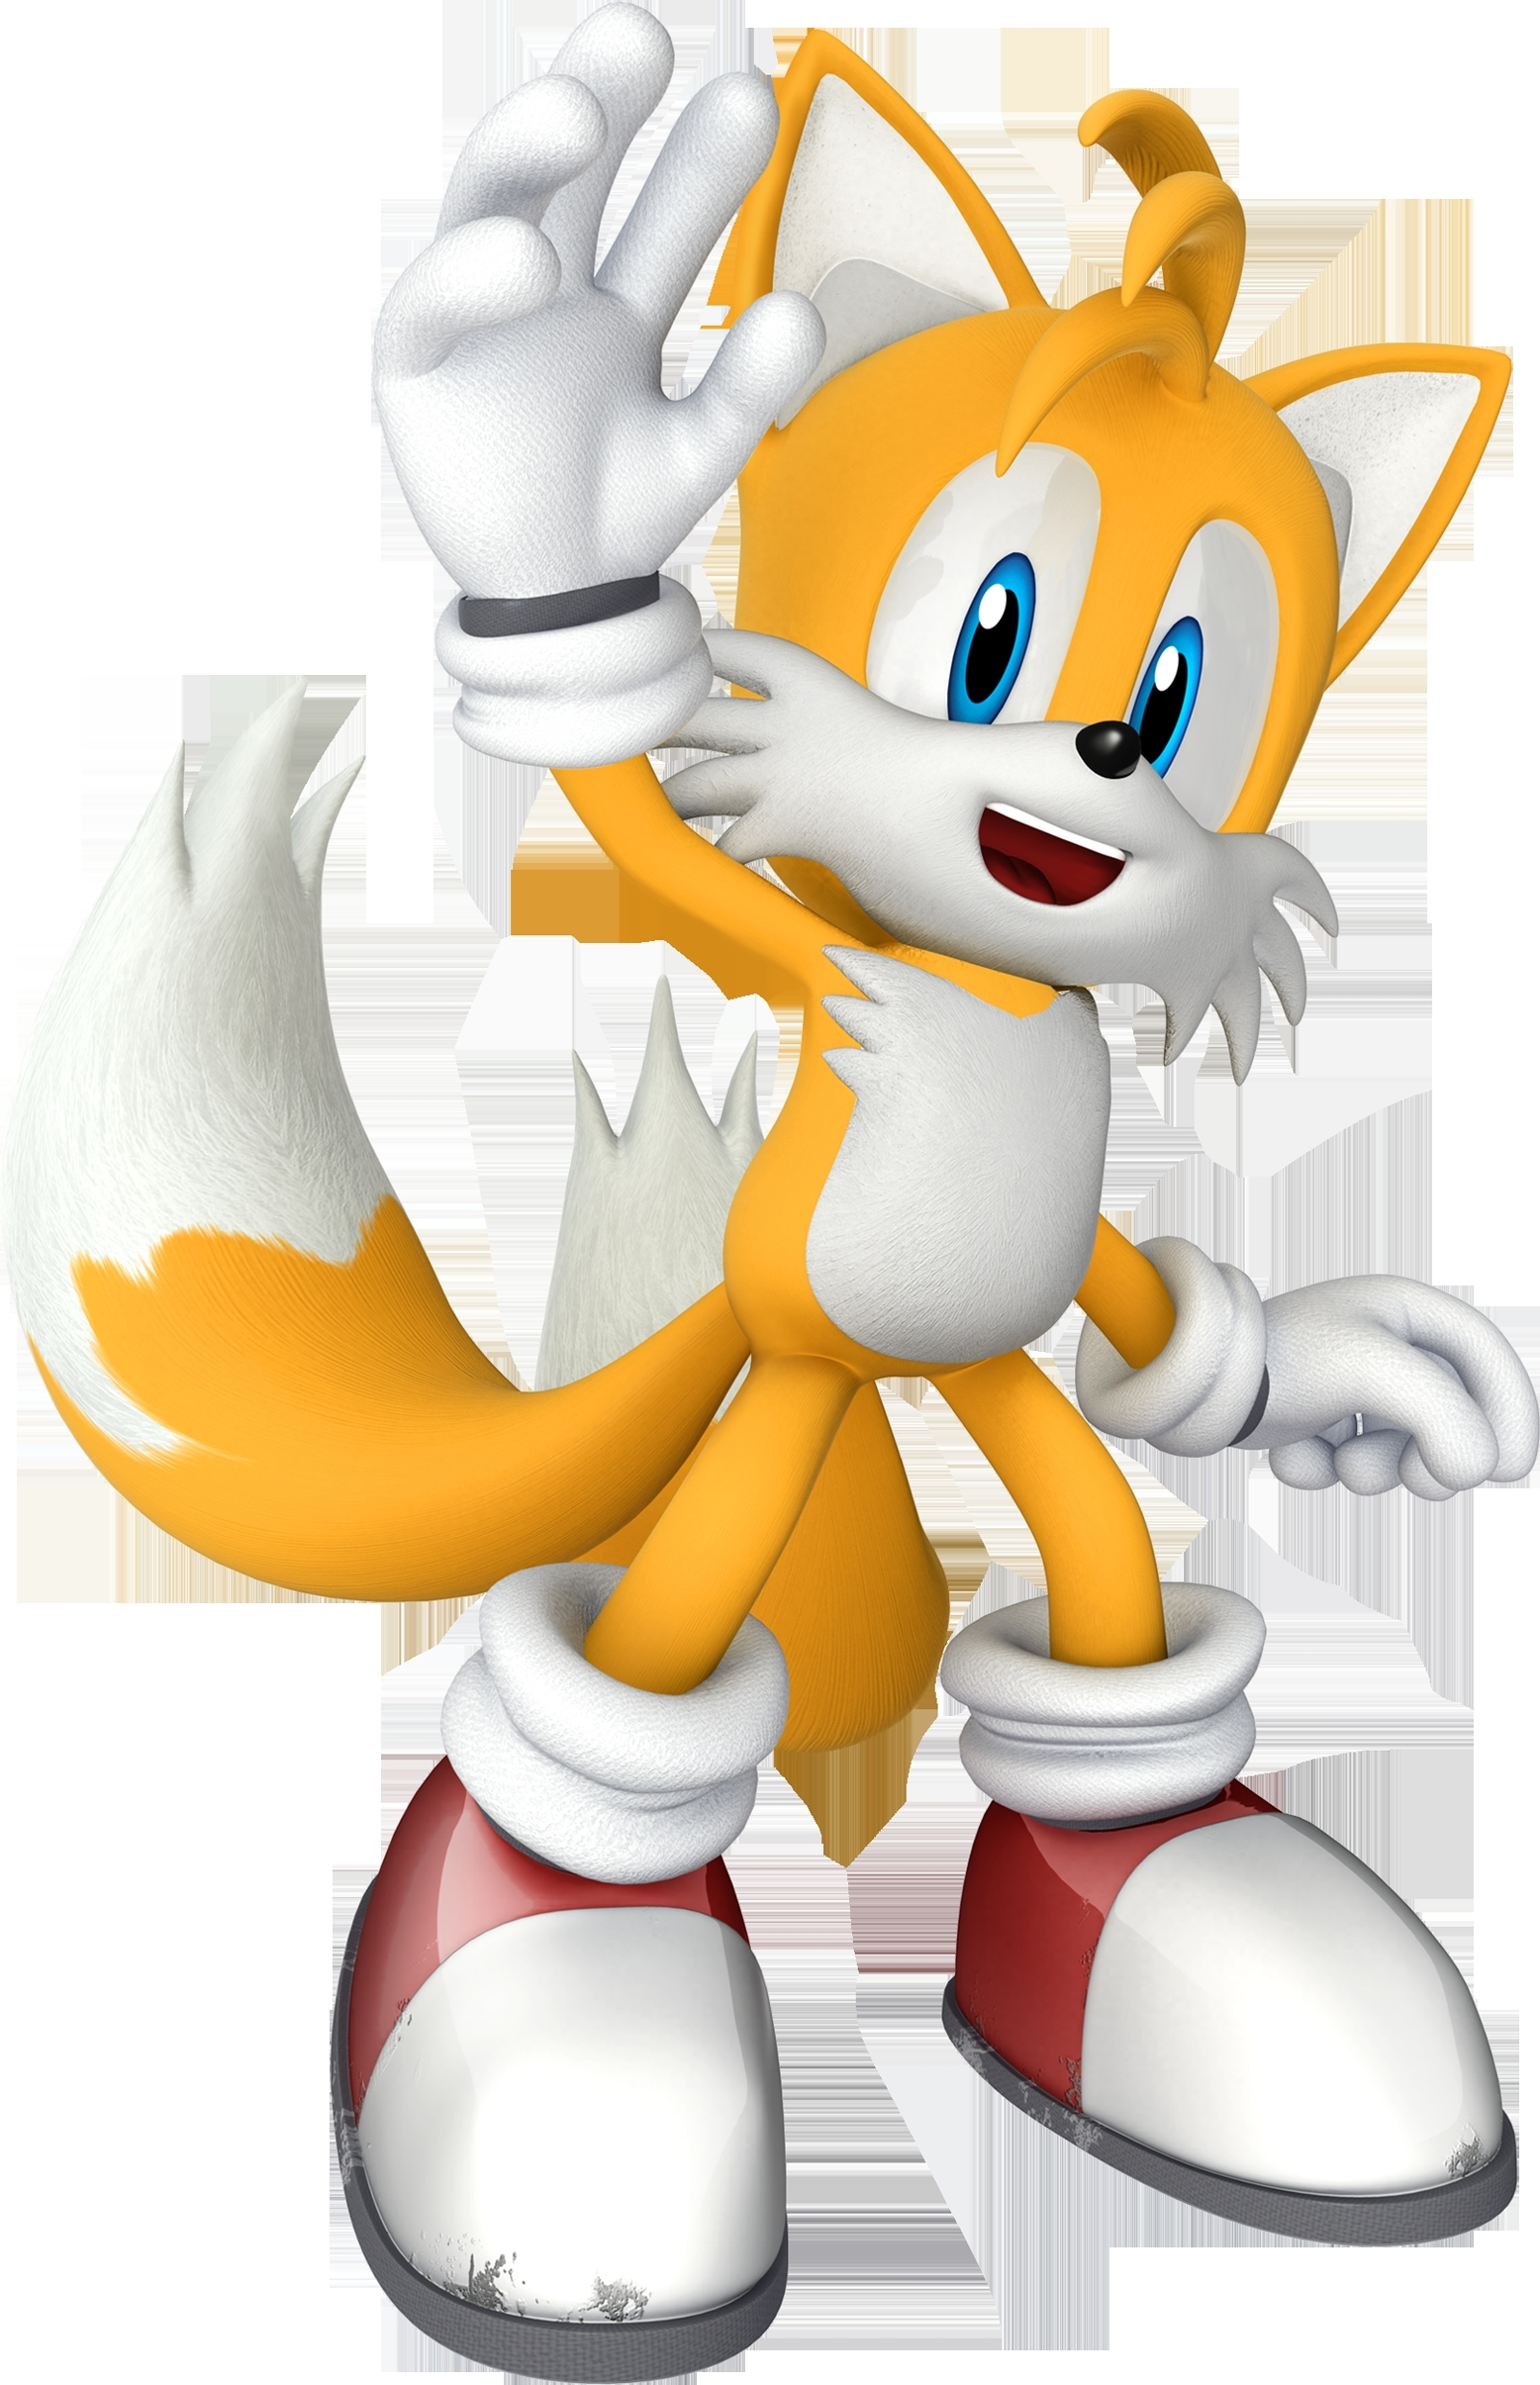 all-star tails!